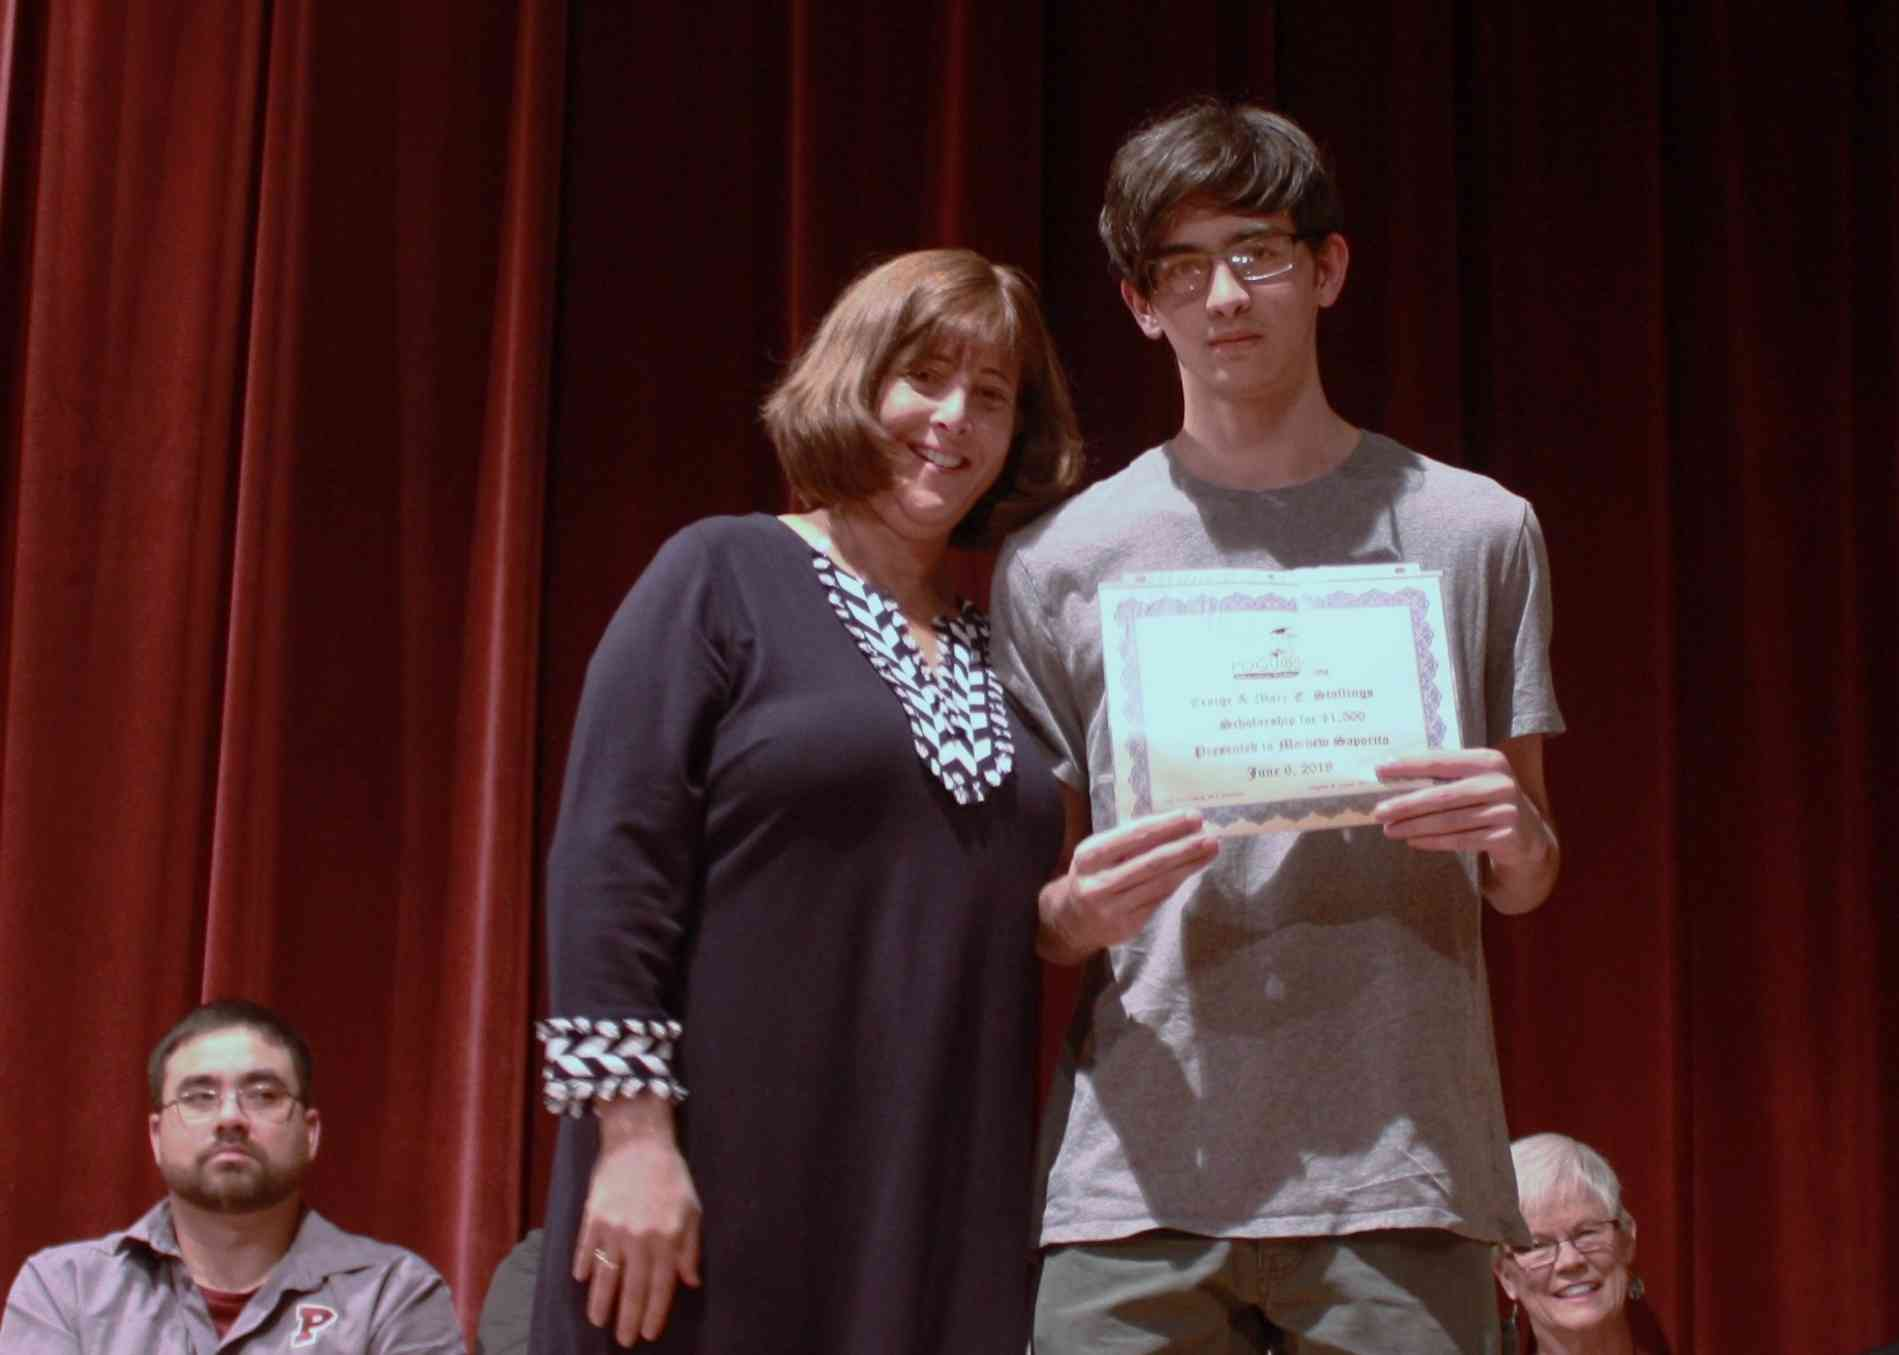 Mathew Sparito--H. Craig and Mary E. Stallings Scholarship